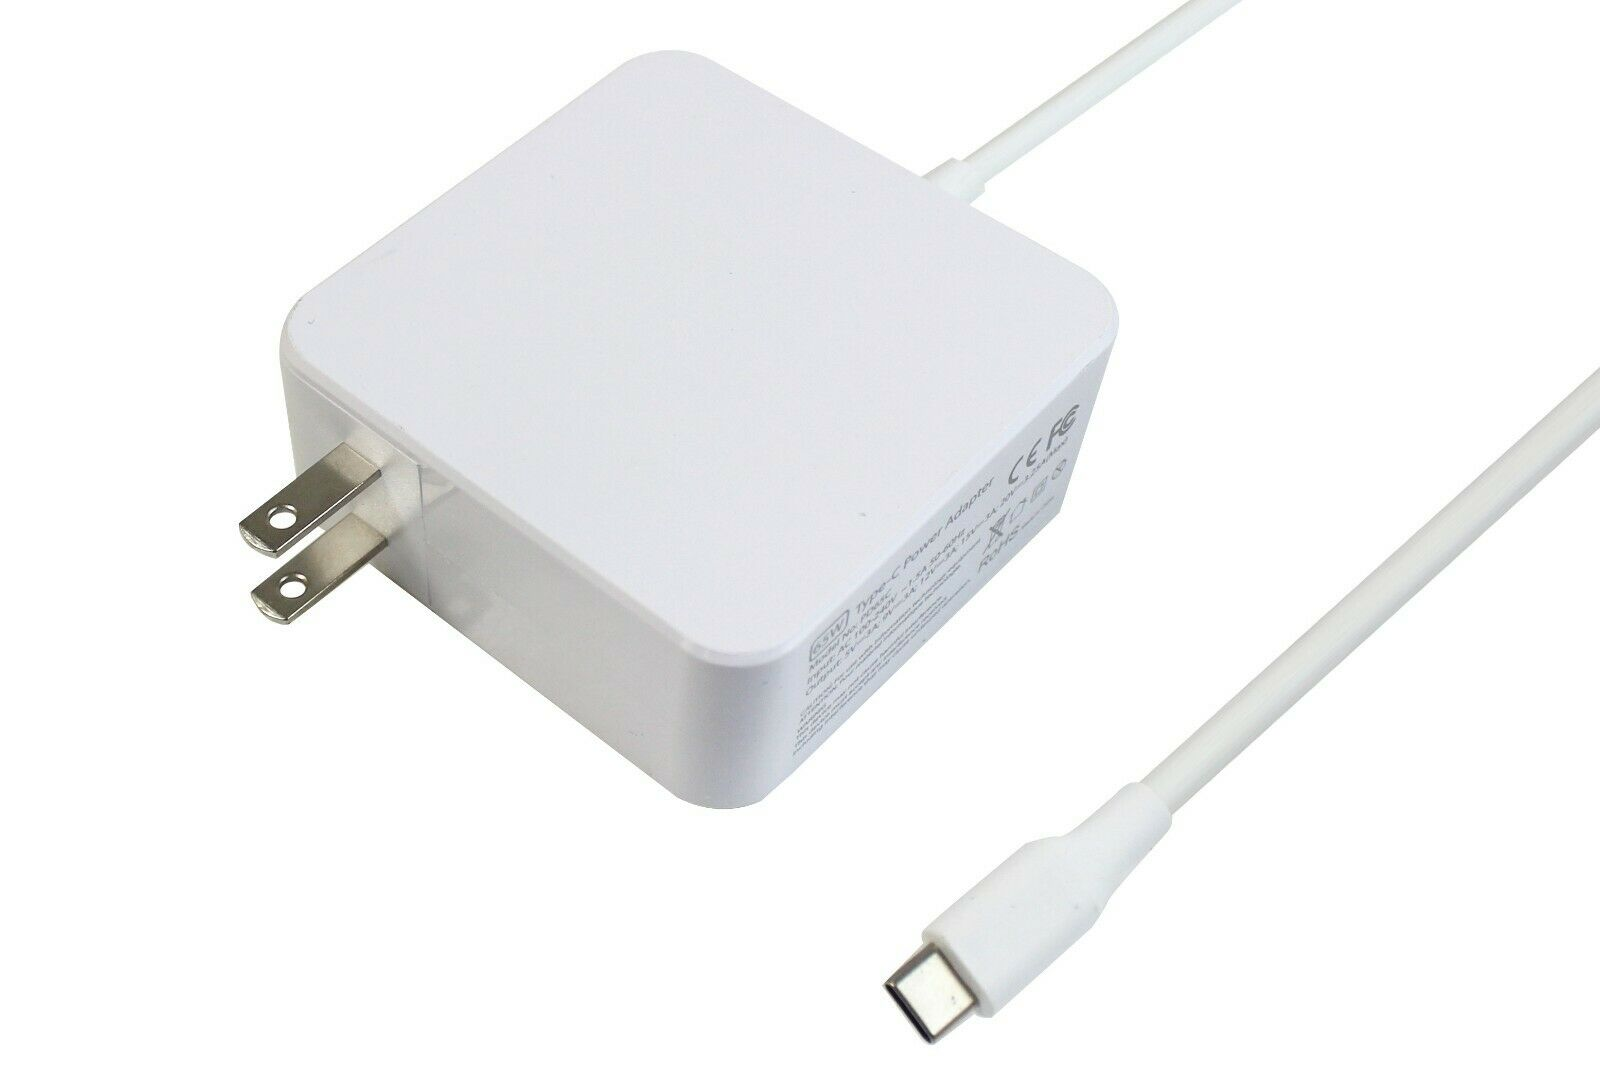 61/65W USB C Power Delivery Charger for Apple MacBook Pro/Ai